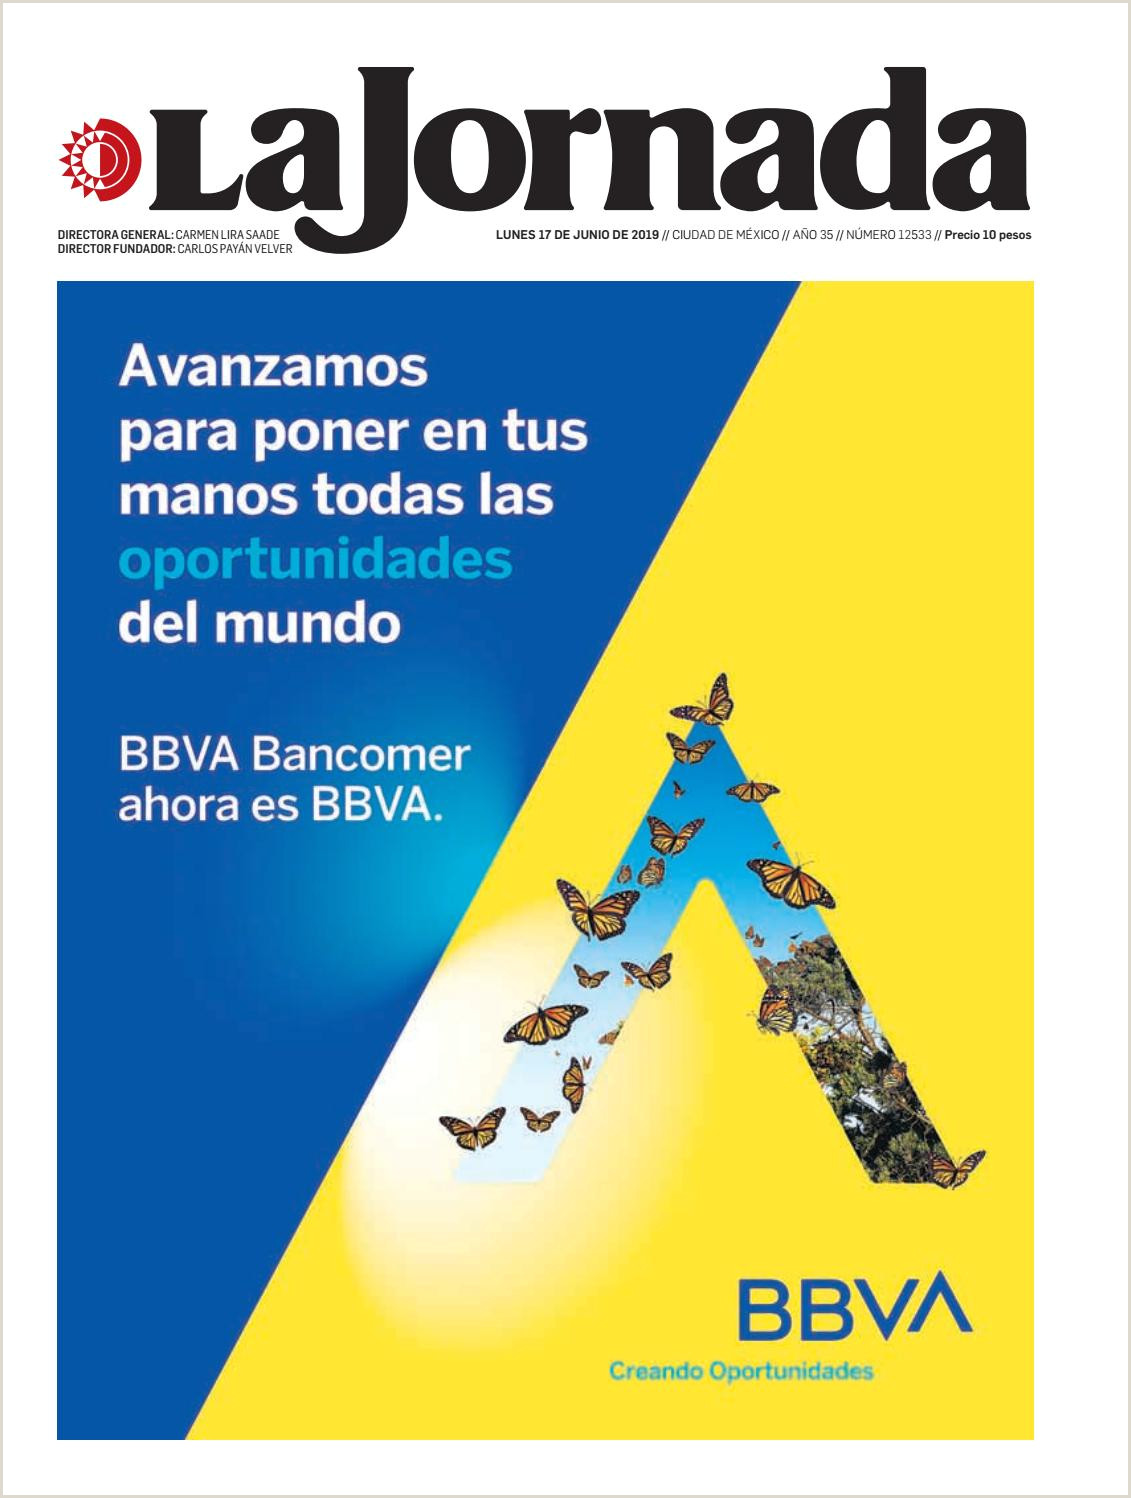 La Jornada 06 17 2019 by La Jornada issuu